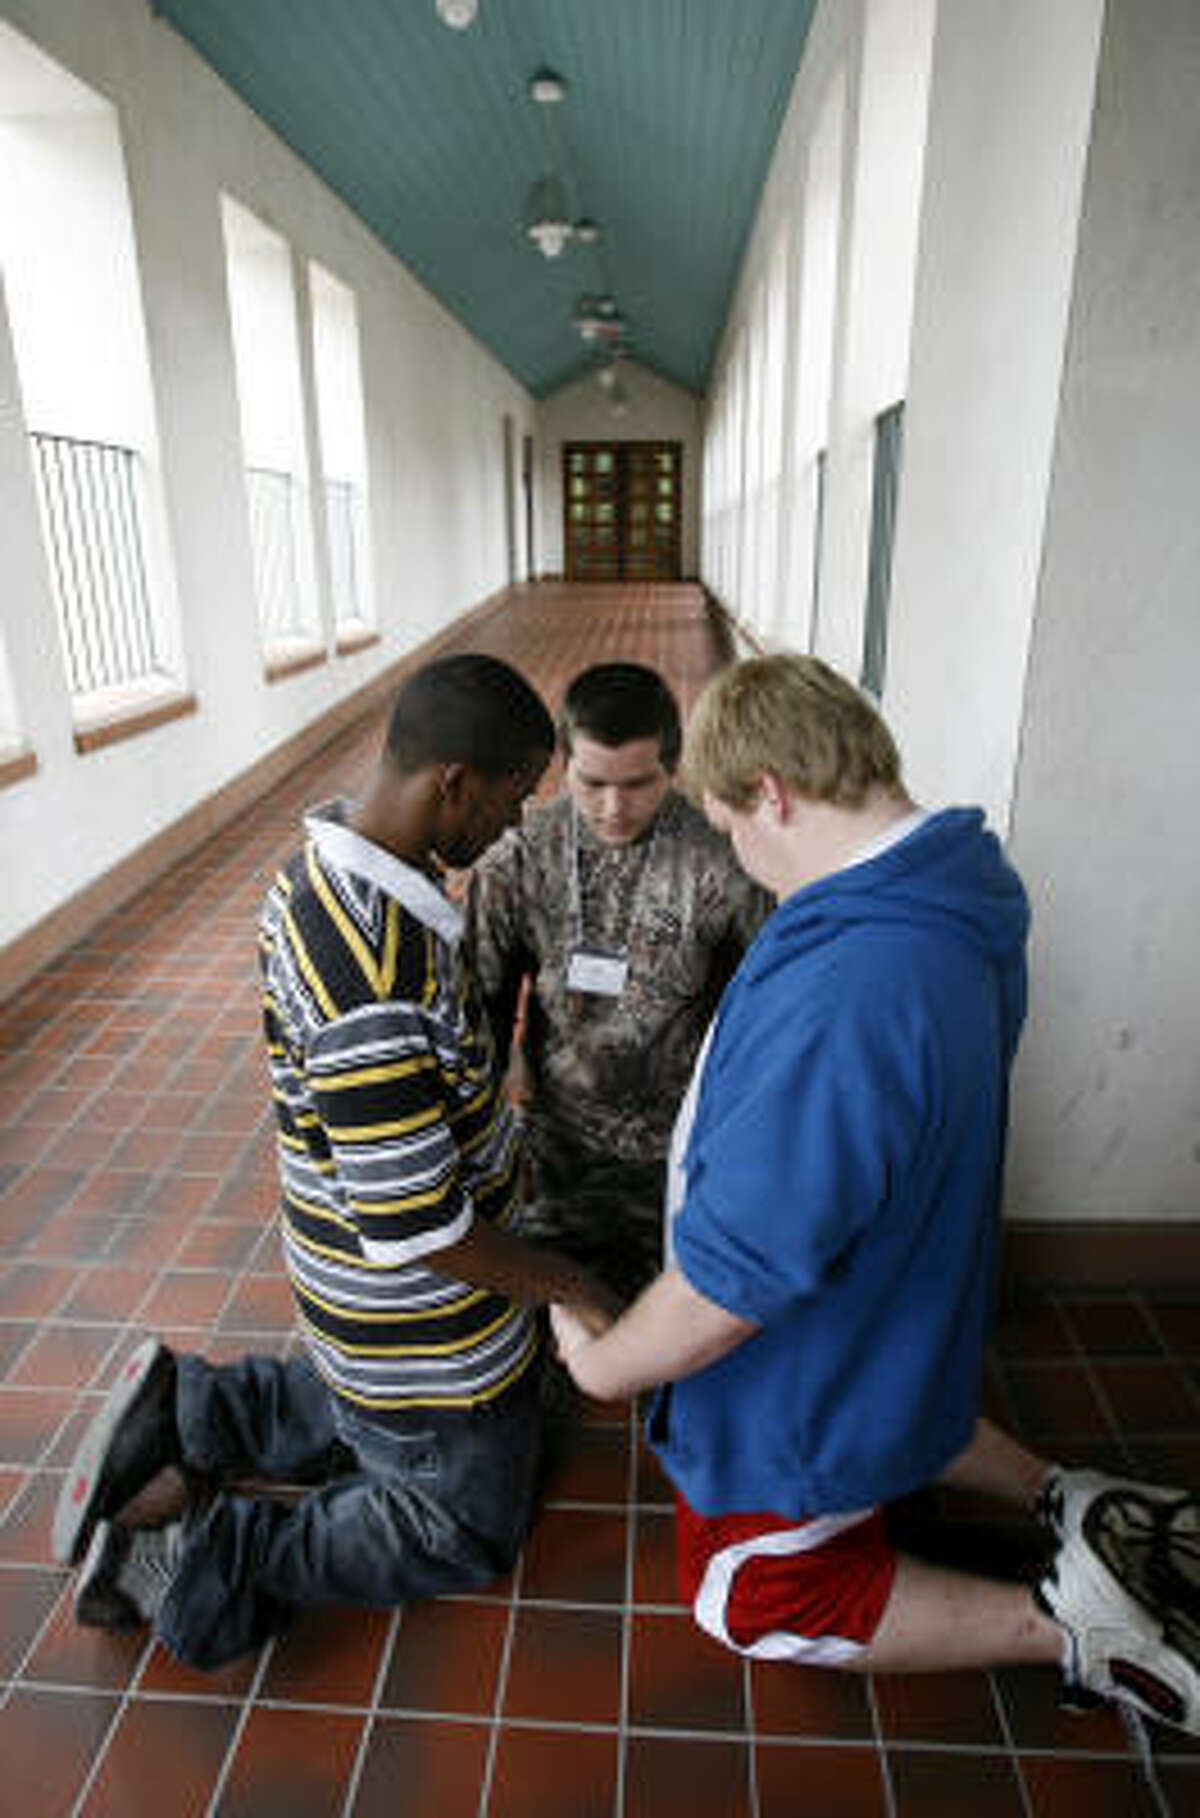 Clay Benton, 18, center, prays with his friends Terrence Payton, 18, left, and Zach Thomas, 17.